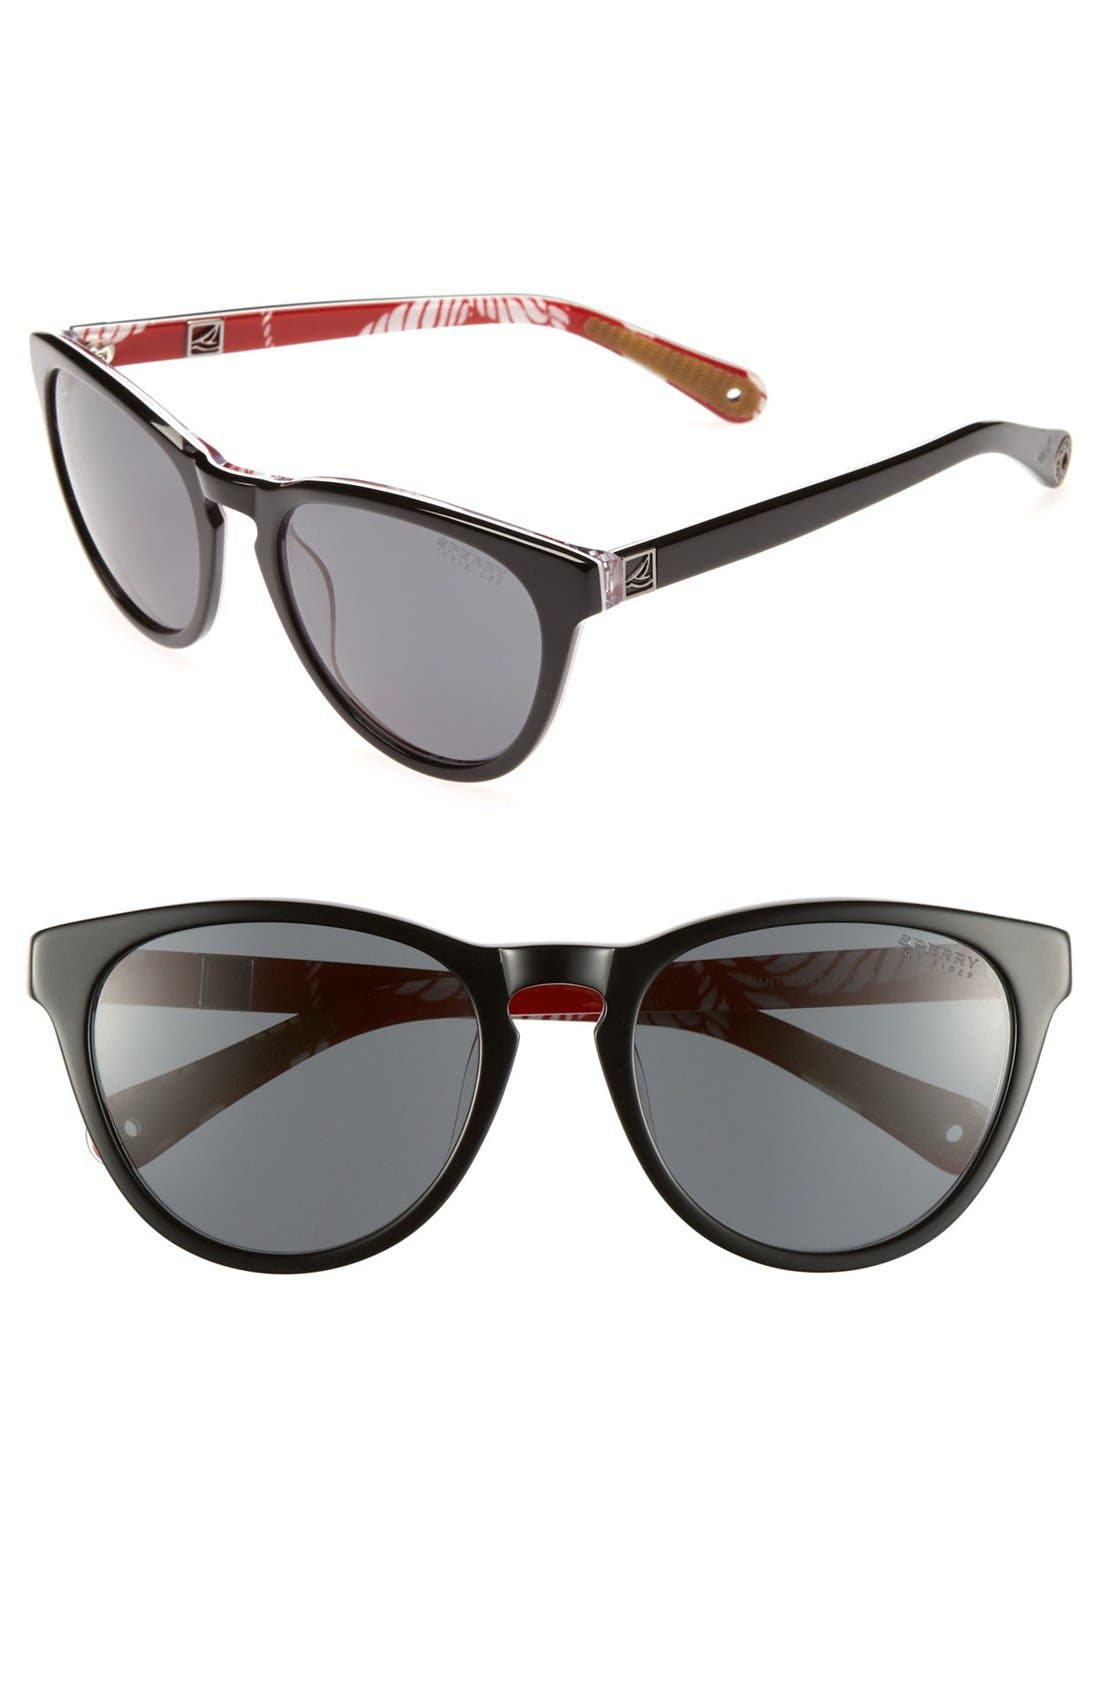 Main Image - Sperry Top-Sider® 'Nantucket' 53mm Sunglasses (Online Only)